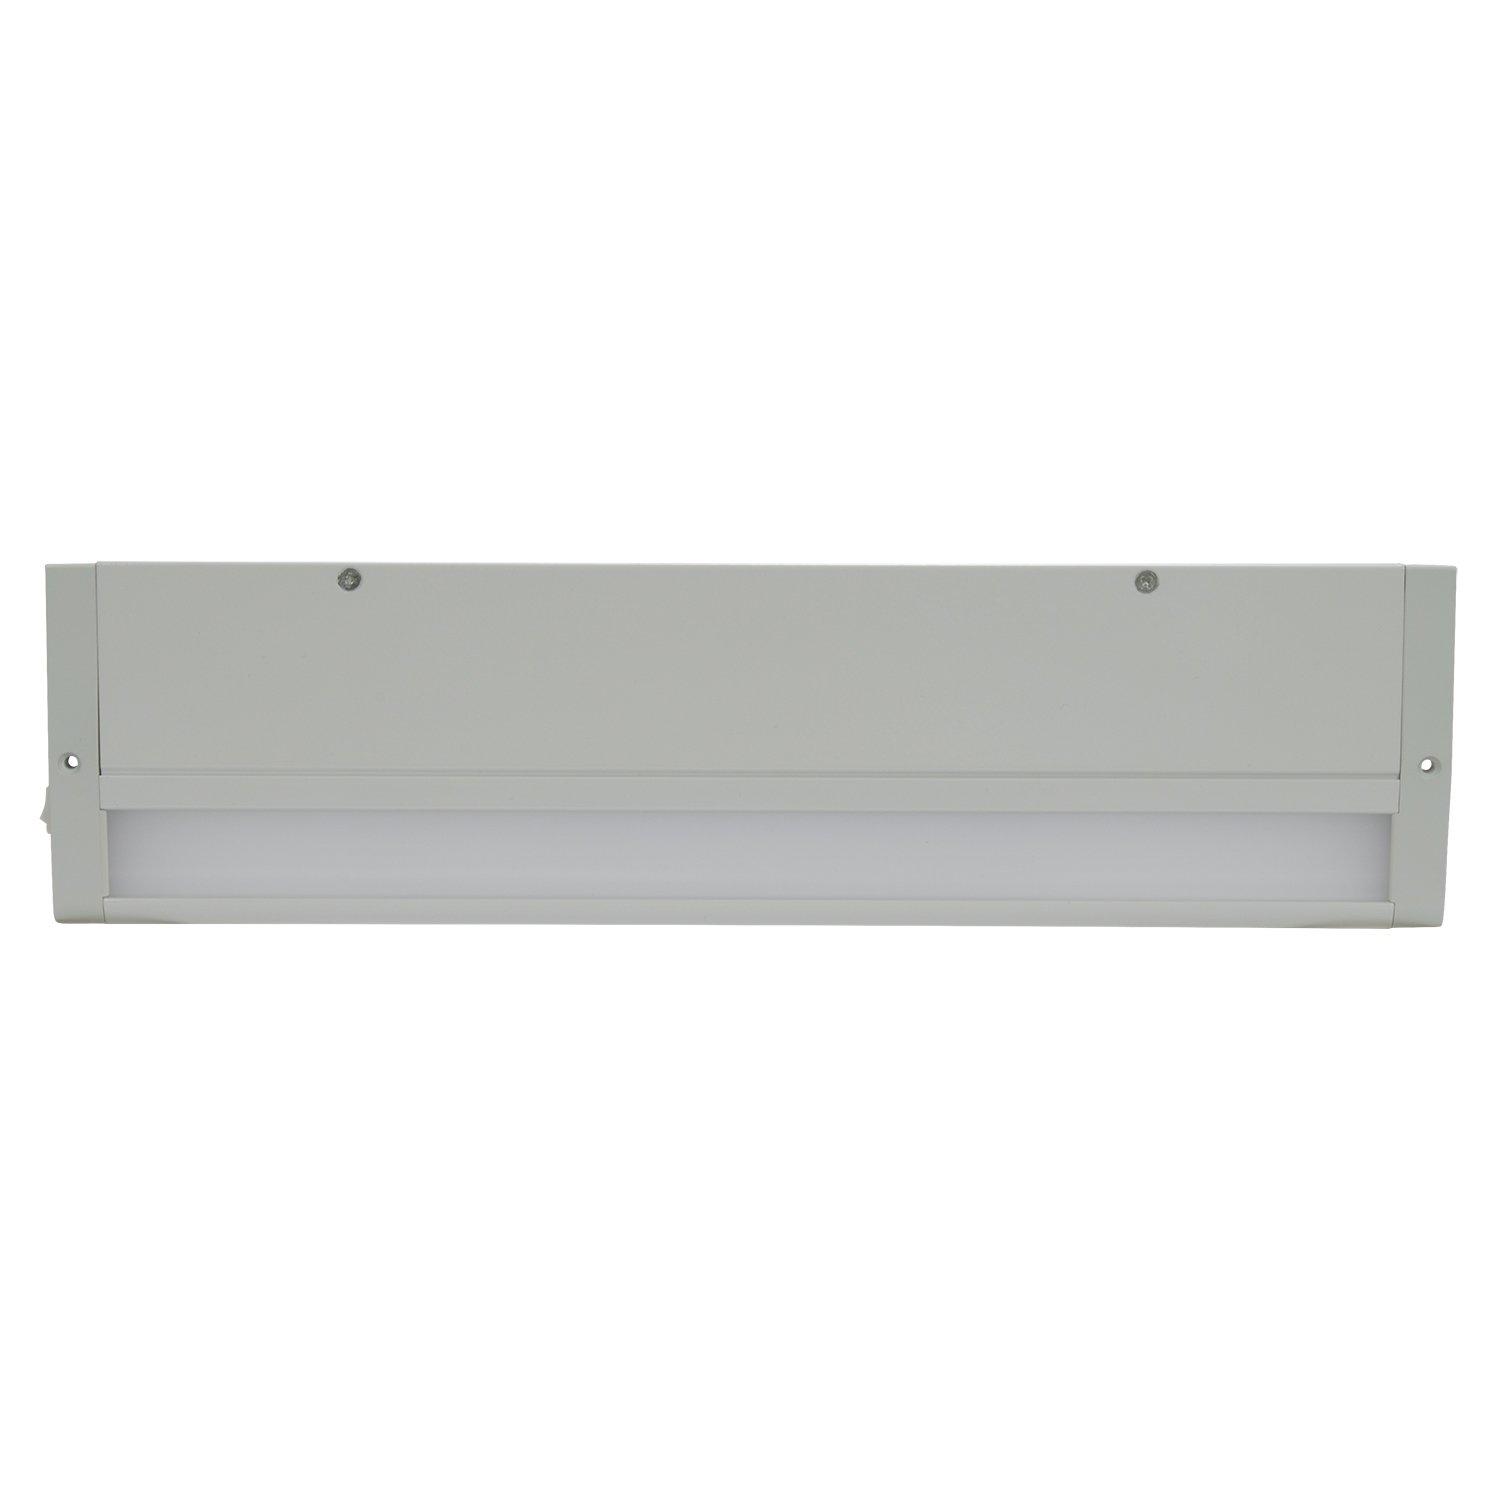 HALO HU1009D930PR 9 LED Under Cabinet, Direct Wire Accent Lights Soft White 3000K Dimmable